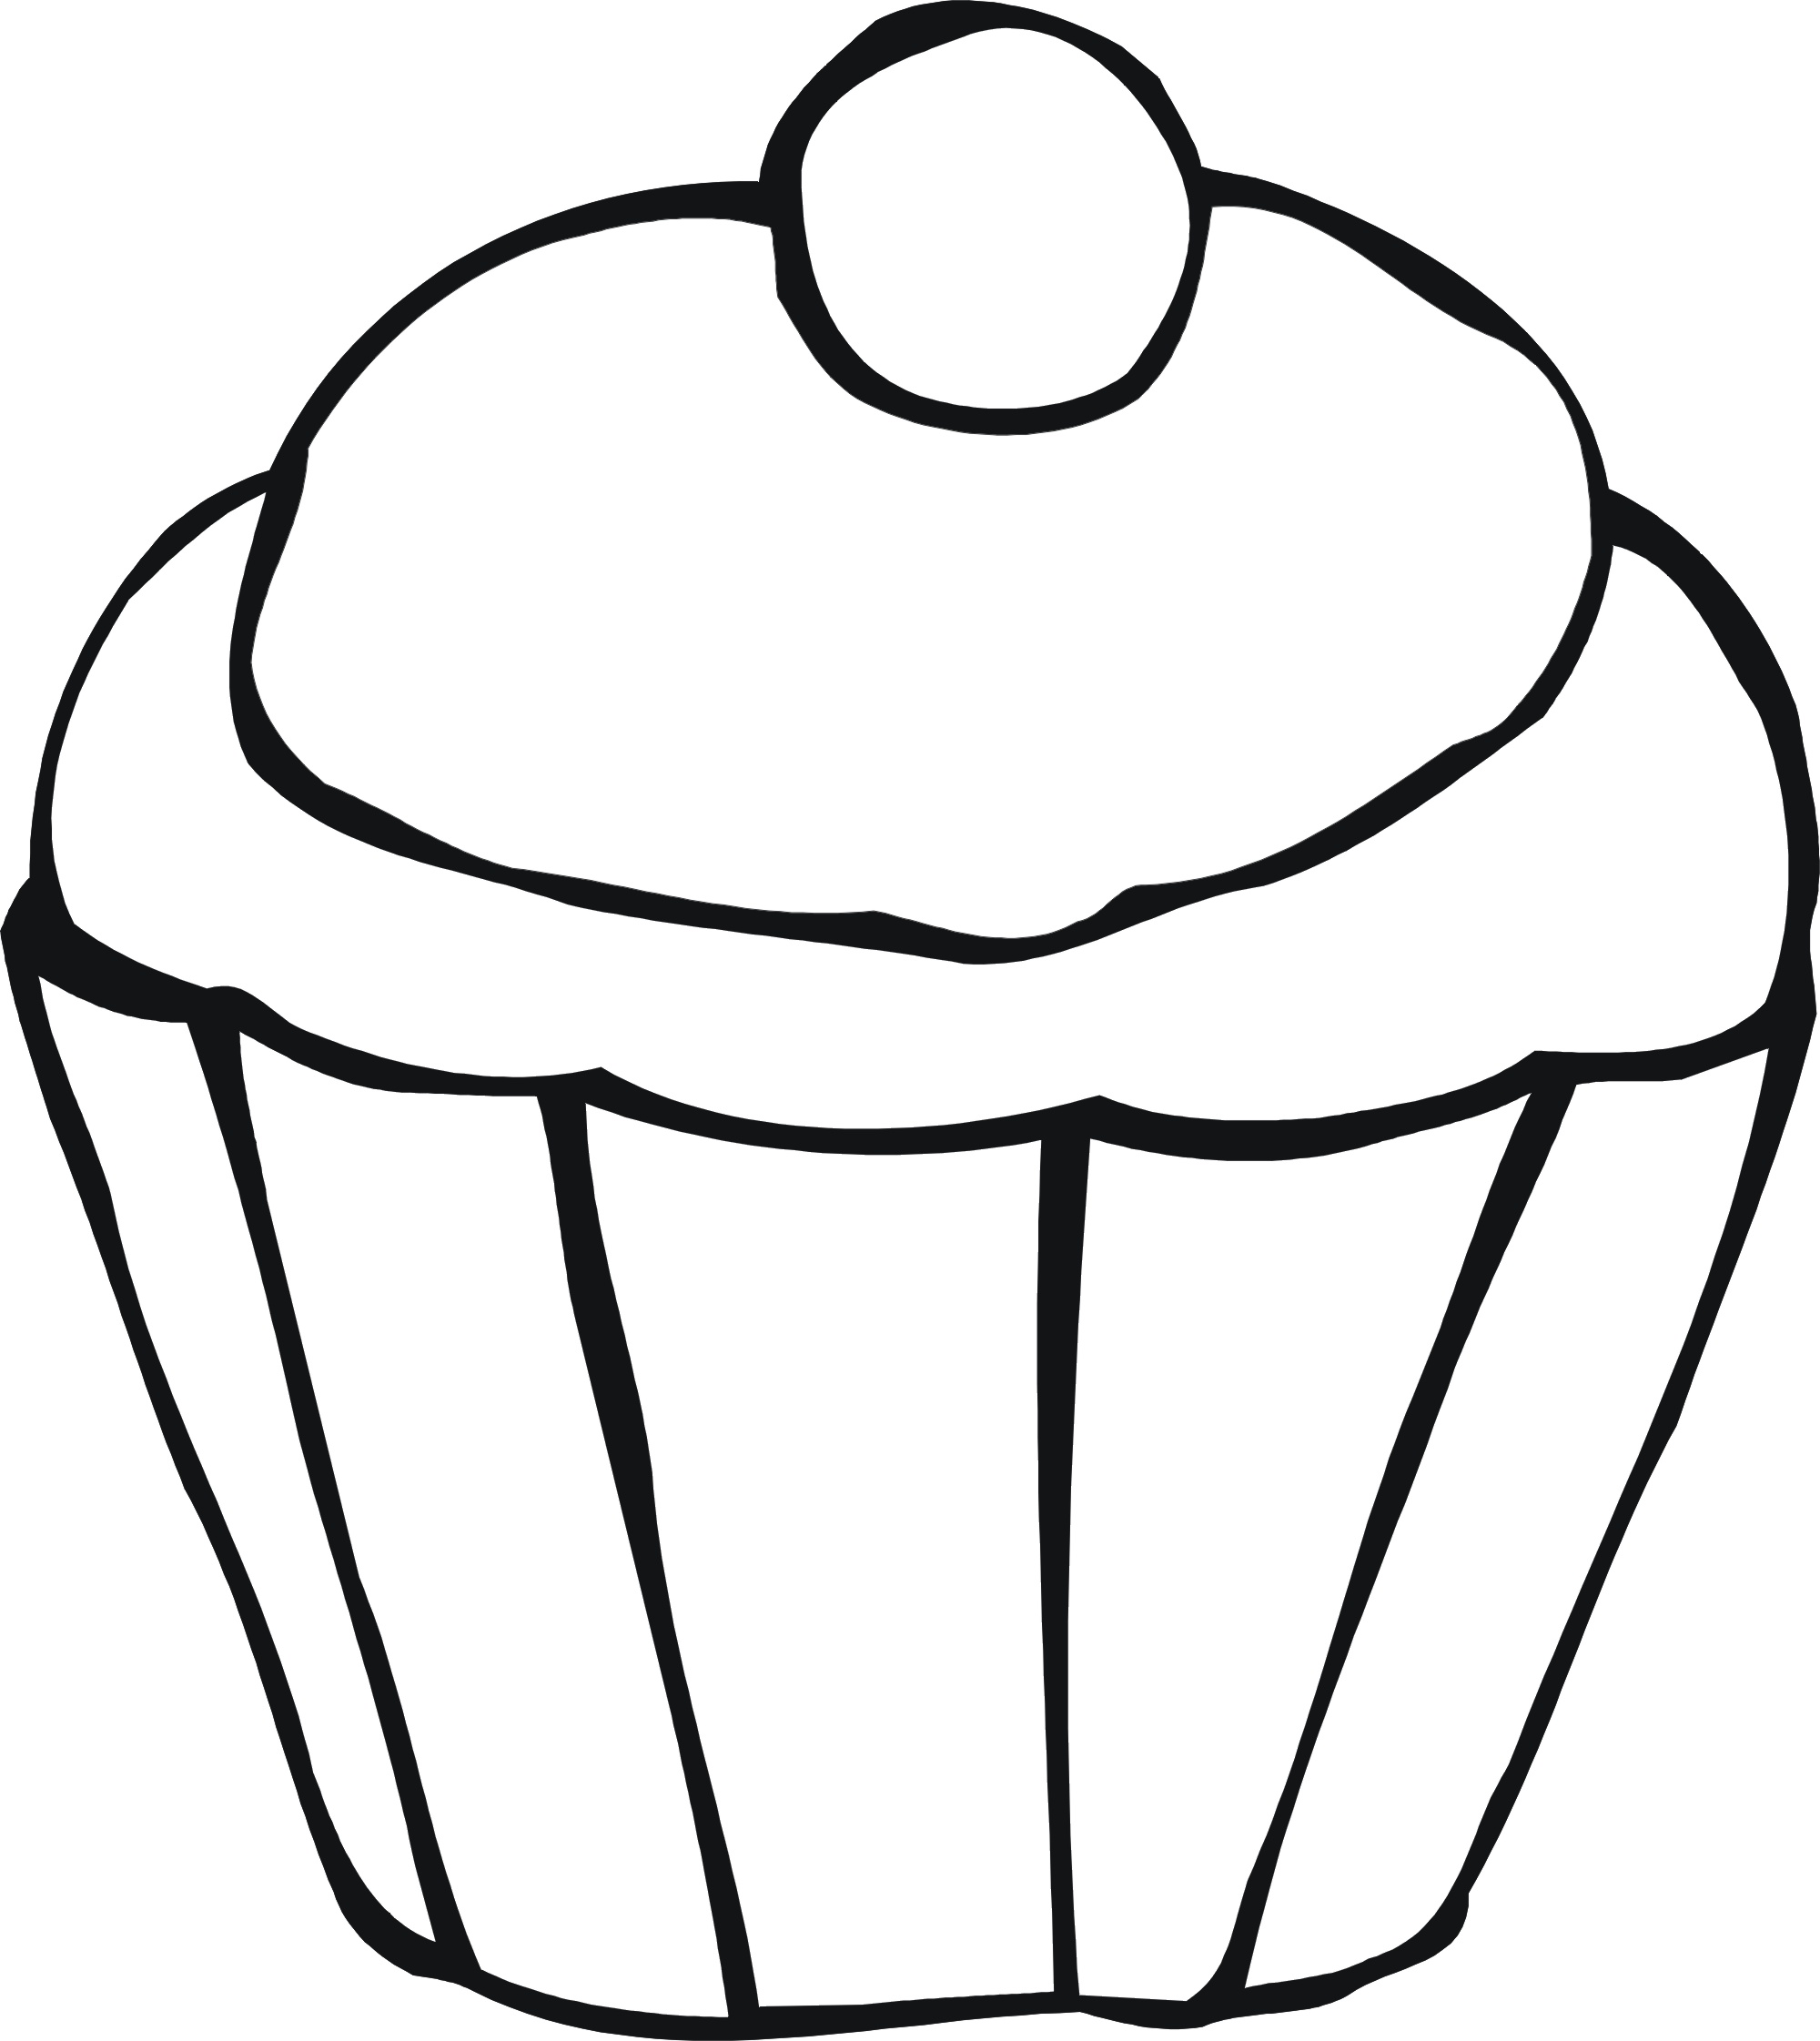 Coloring pages for kids clipart picture library stock coloring ~ Printable Coloring For Kids Photo Inspirations Page ... picture library stock